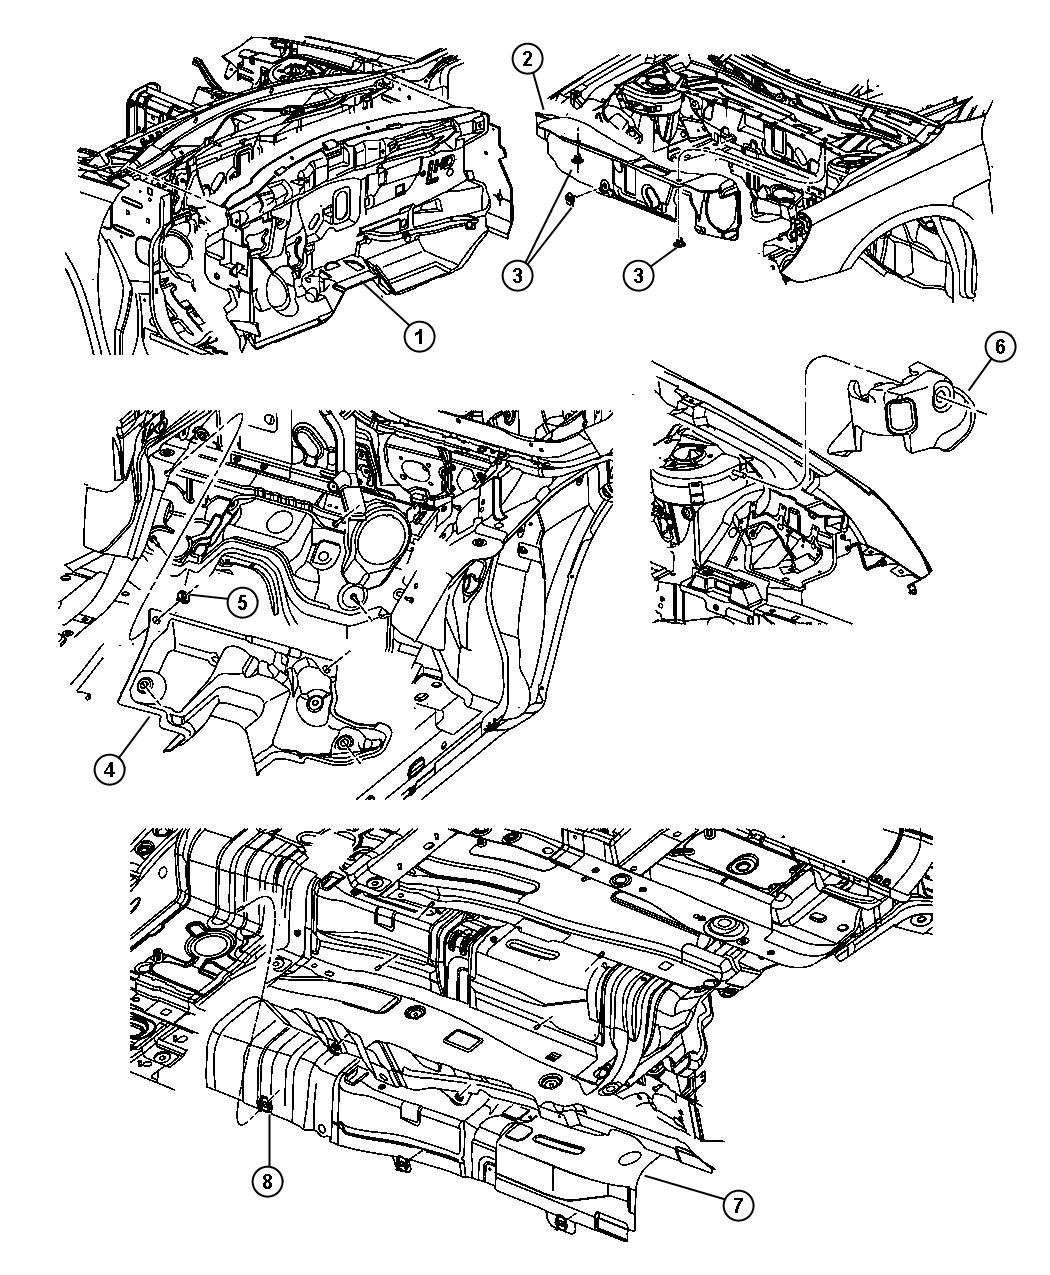 Hyundai Santum Fe Ignition Wiring Diagram